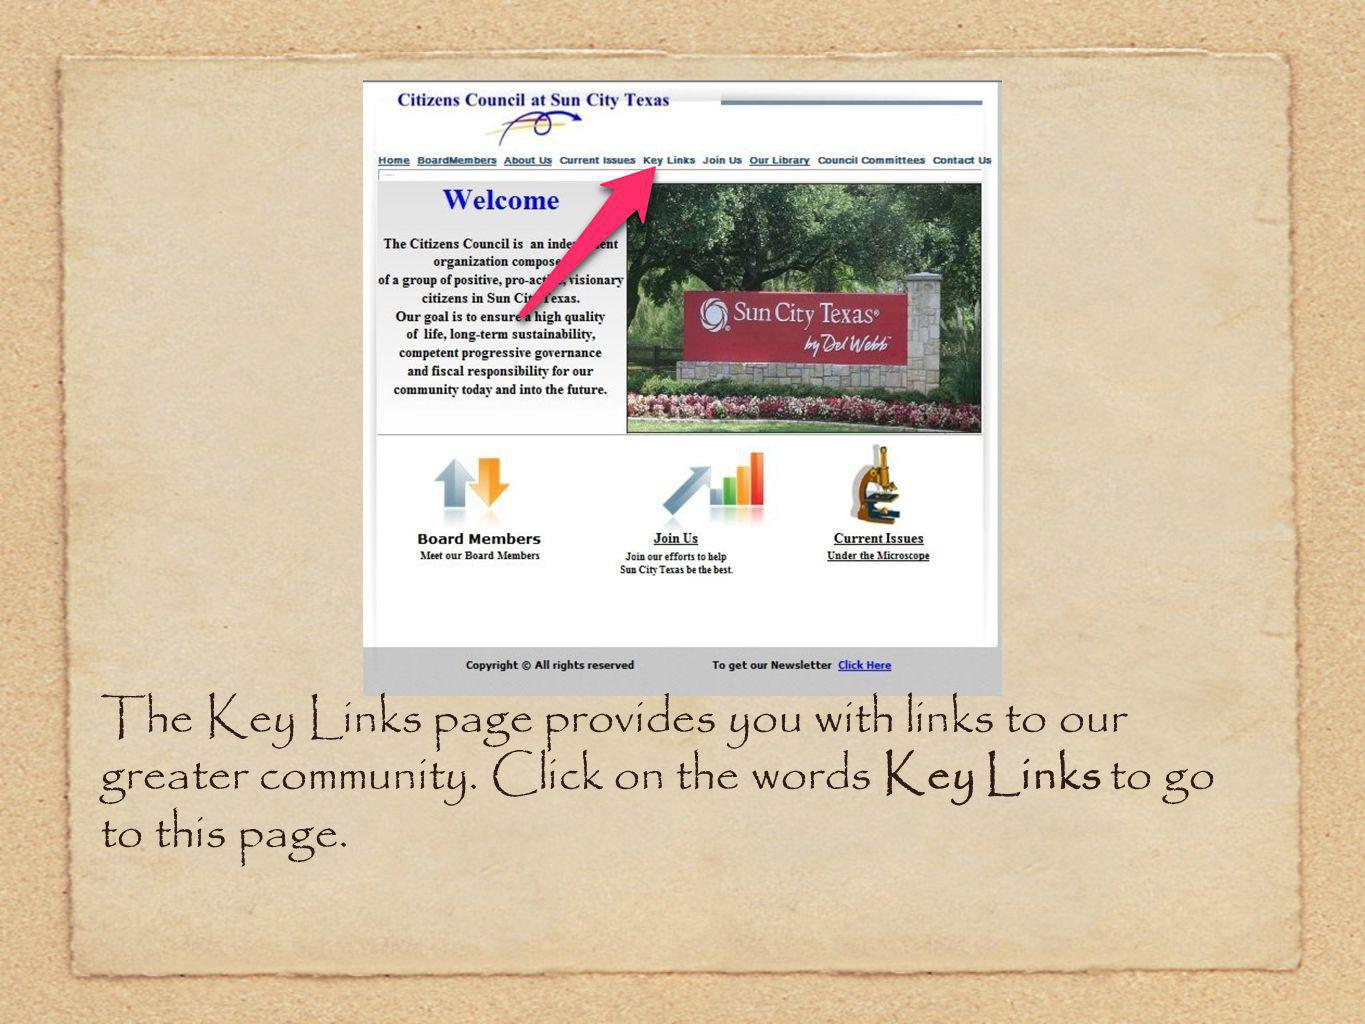 The Key Links page provides you with links to our greater community. Click on the words Key Links to go to this page.